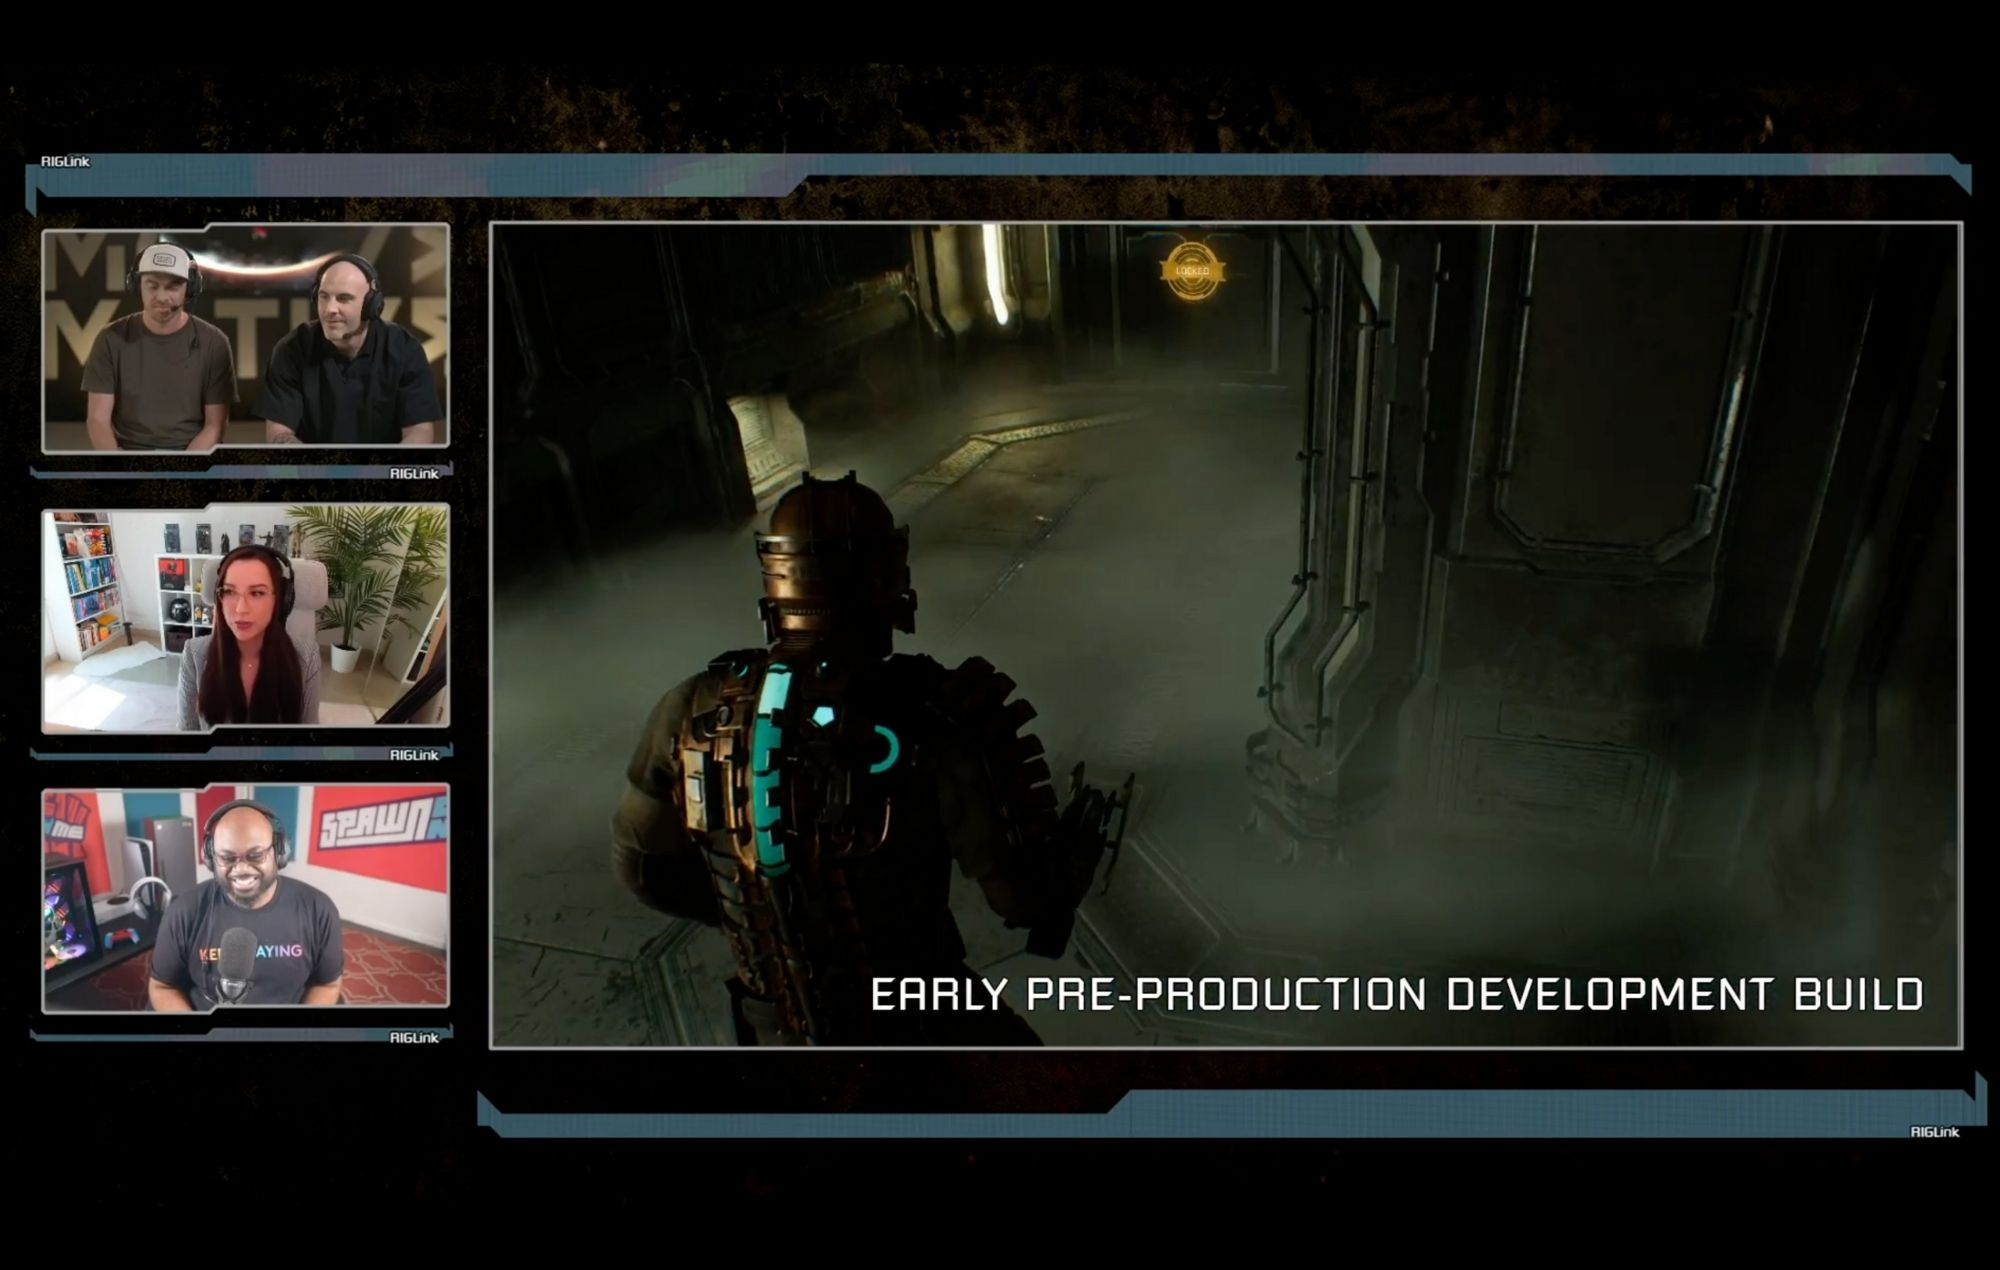 Dead Space remake early gameplay footage